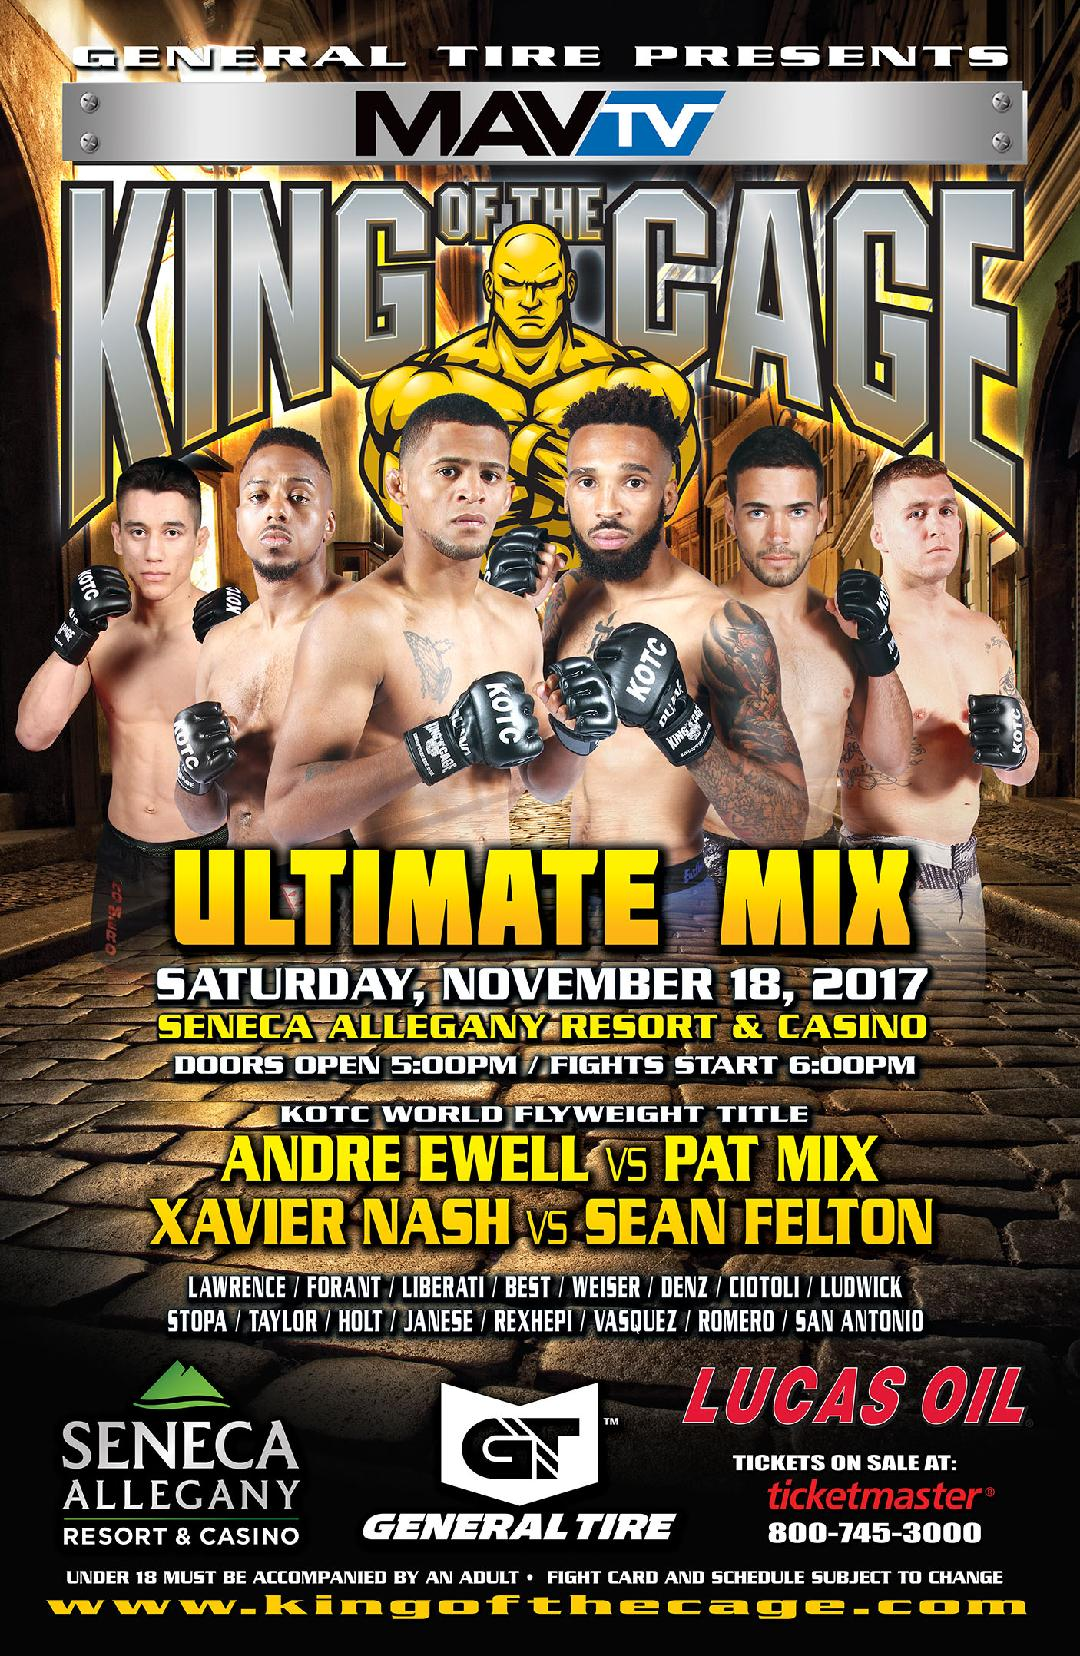 Pat Mix meets Andrew Ewell in New York for vacant King of the Cage flyweight title